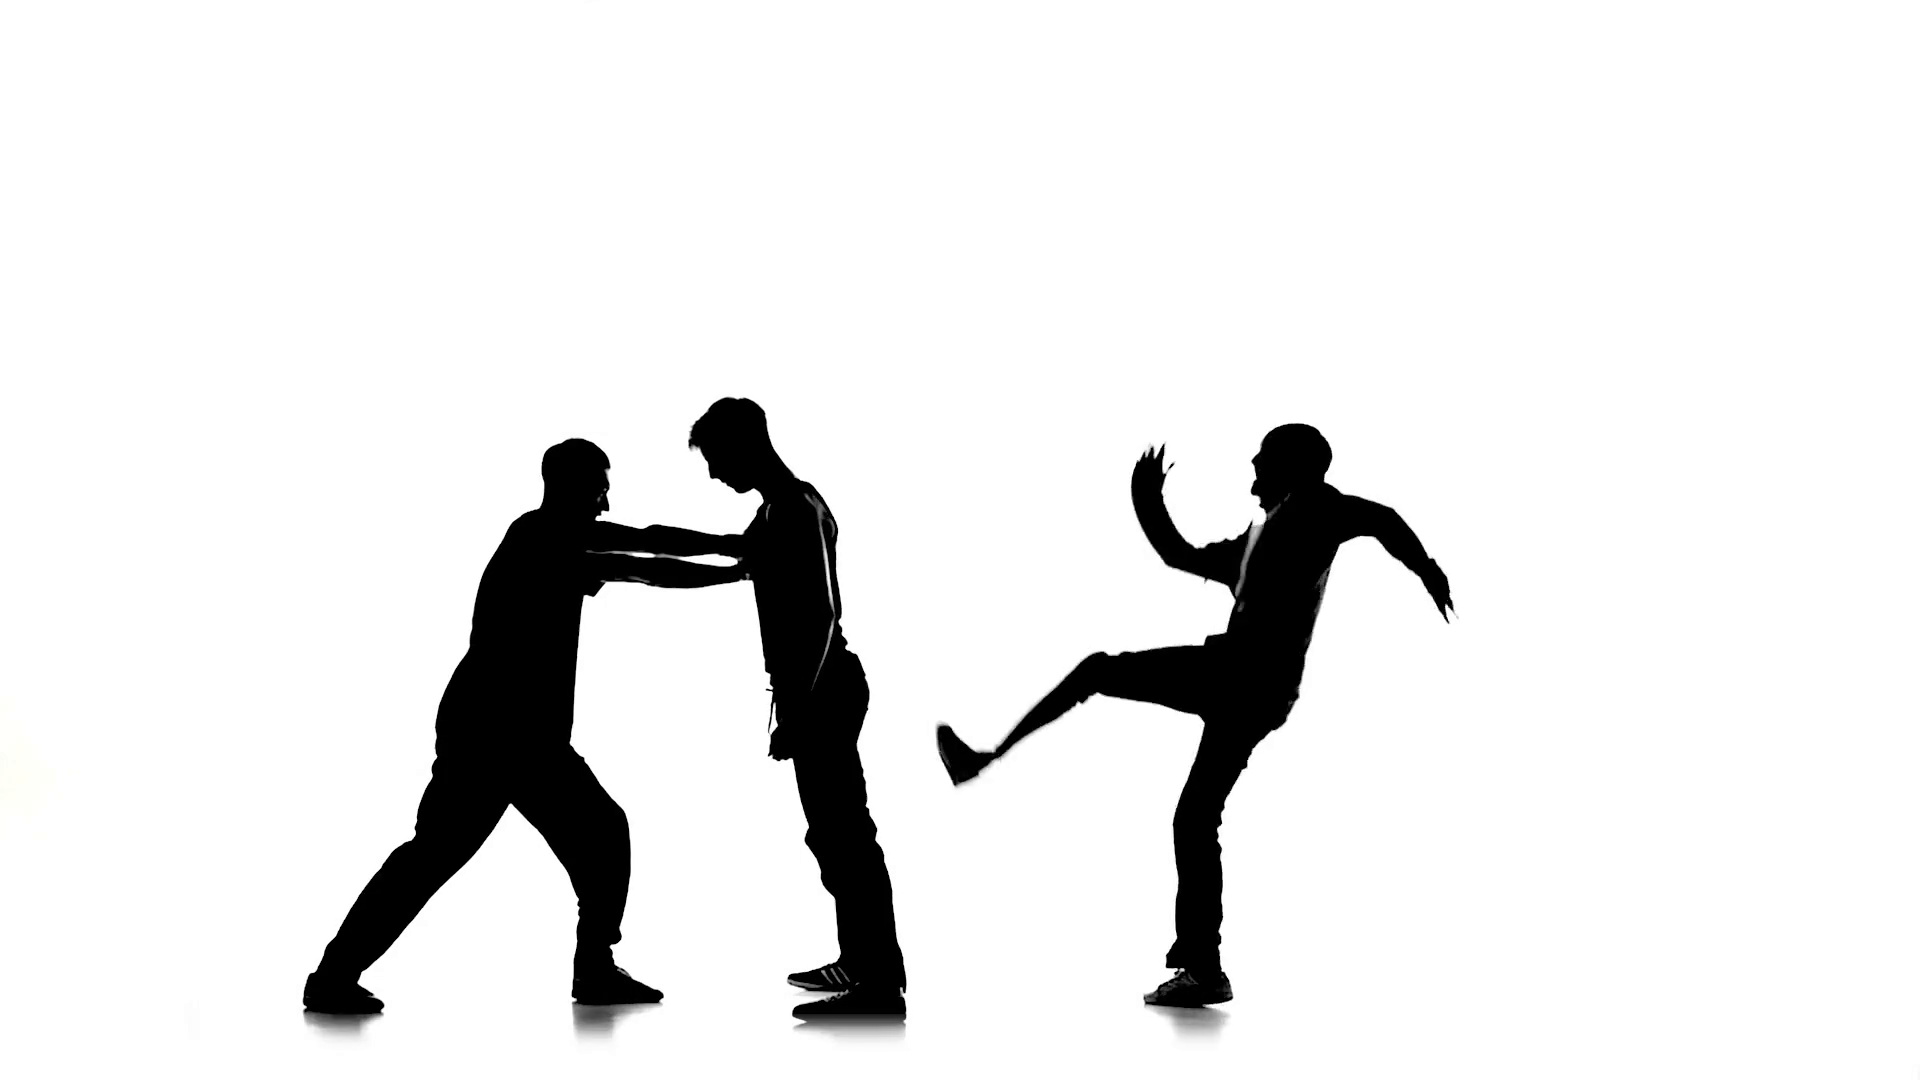 1920x1080 Three Young Men Dancing Hip Hop, Breakdance On White, Silhouette